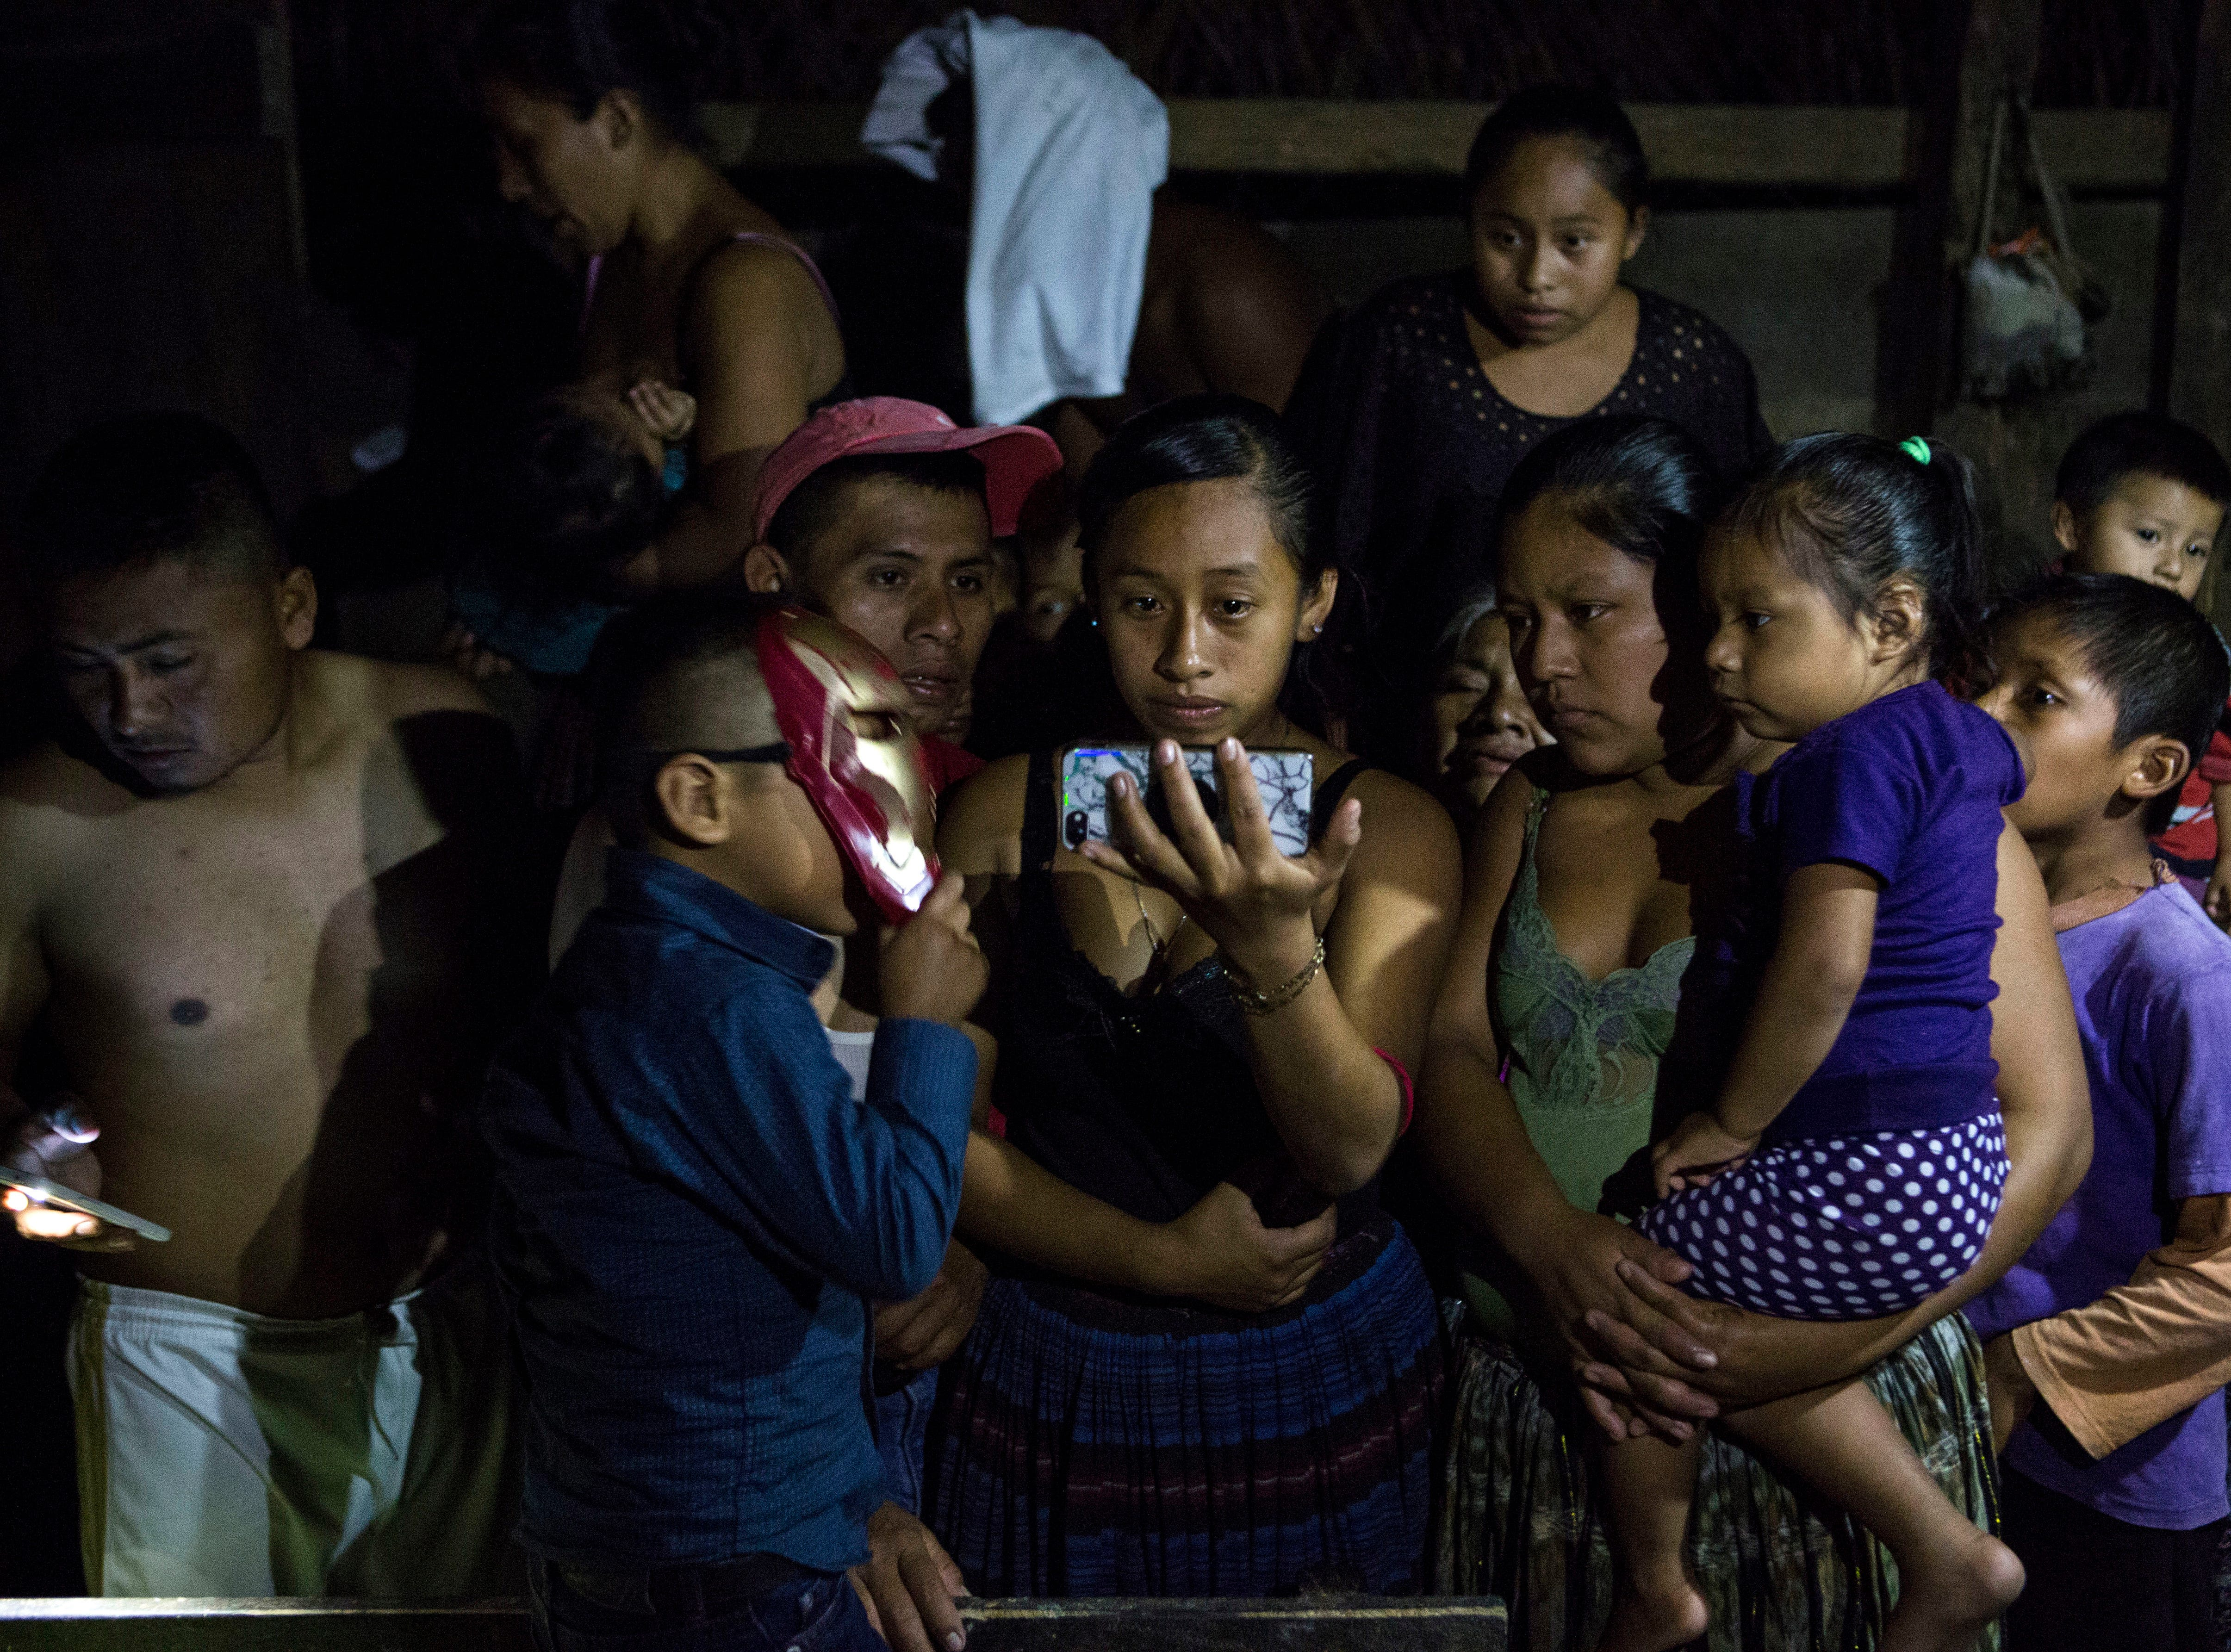 Members of the Caal Maquin family watch a video of the repatriation of Jakelin Caal Maquin's remains at Guatemala City International Airport, in San Antonio Secortez, Guatemala, Sunday, Dec. 23, 2018. The body of Caal Maquin, 7, who died while in custody of the U.S. Border Patrol, arrived in her native Guatemala on Sunday and was driven hours into the countryside to be handed over to family members for a last goodbye.